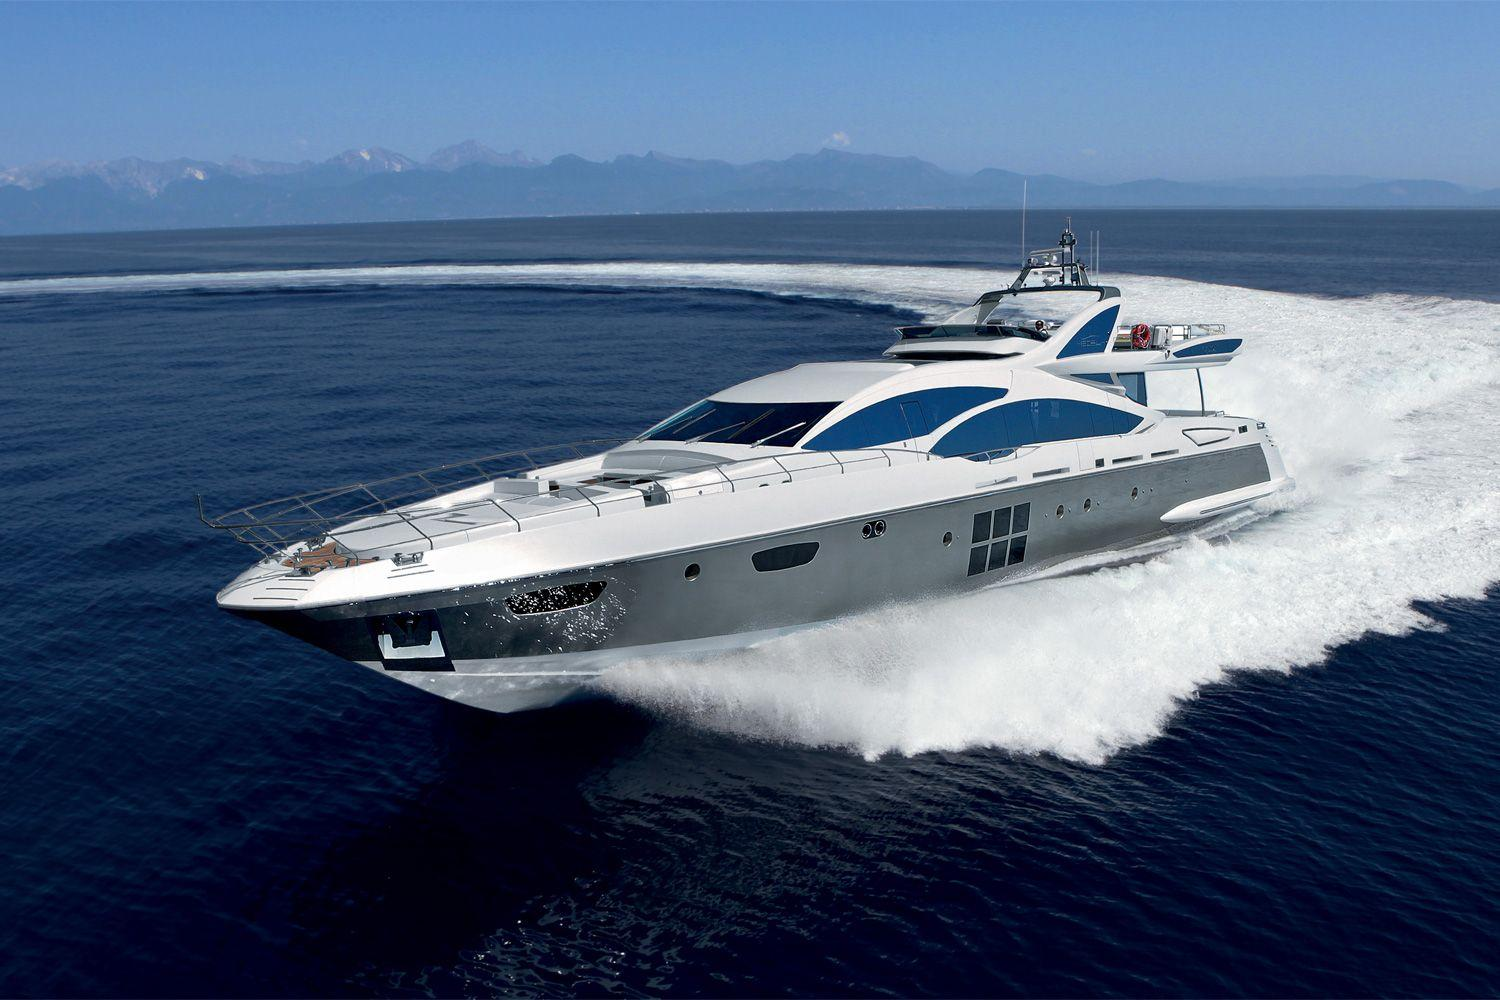 Yacht for sale Azimut Grande 120SL: price 14600000 € > Motor yachts